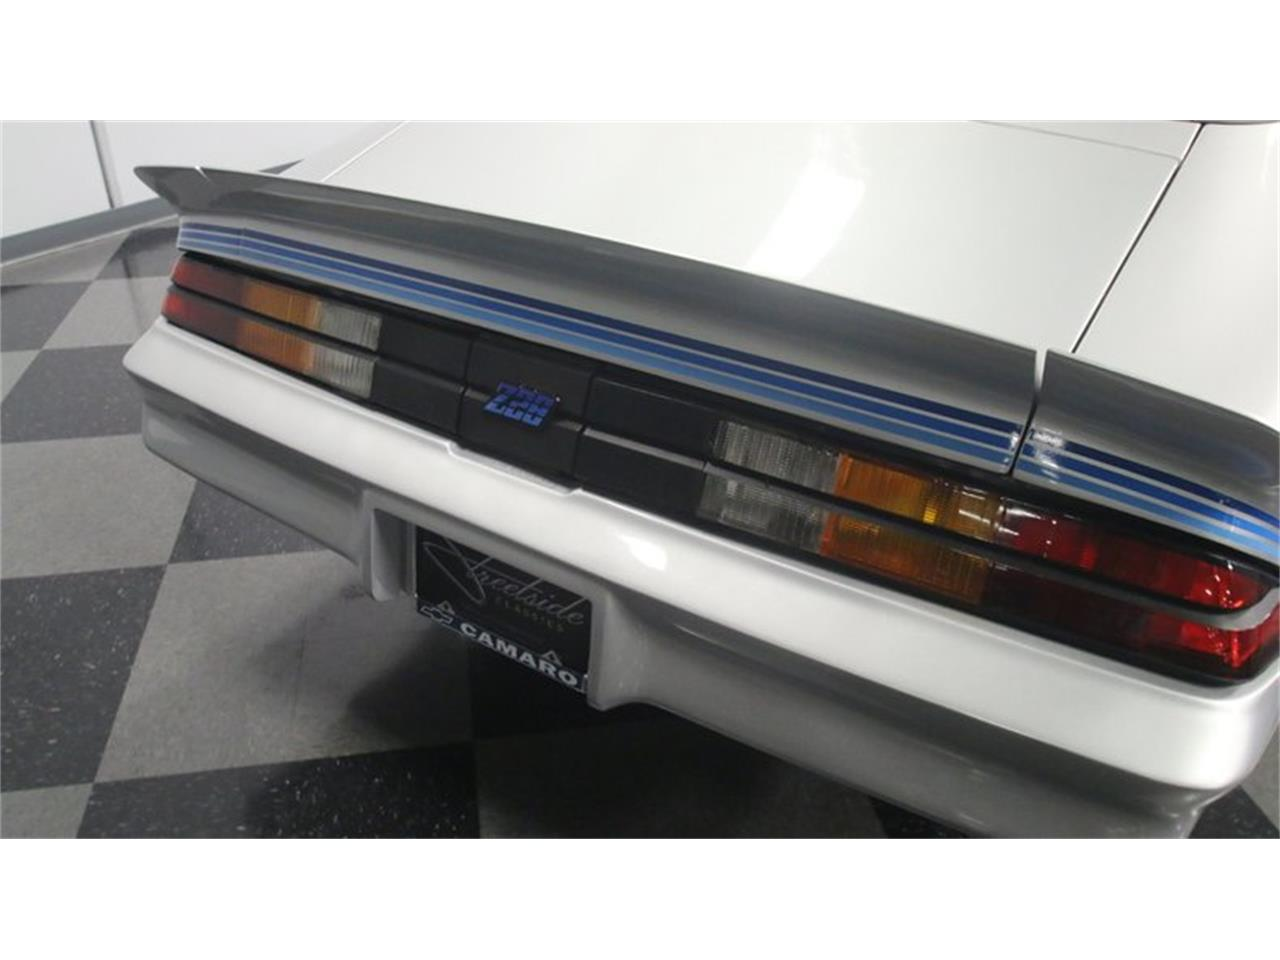 Large Picture of '80 Camaro located in Georgia - $23,995.00 Offered by Streetside Classics - Atlanta - O8Z8